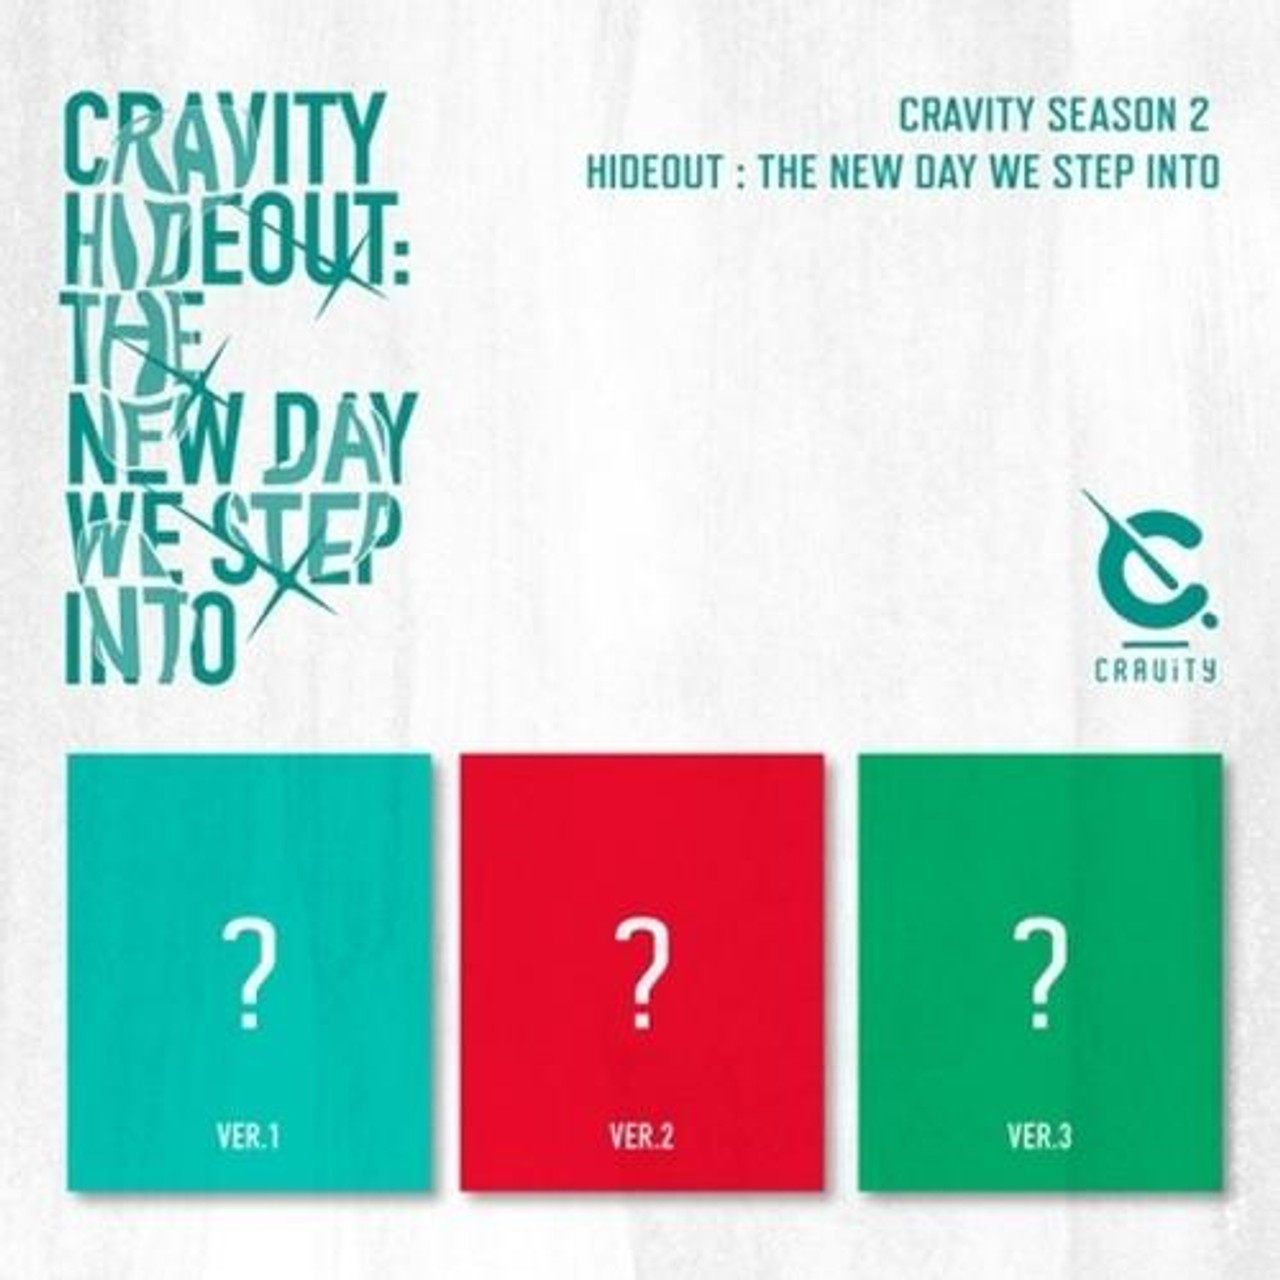 CRAVITY - SEASON2. [HIDEOUT: THE NEW DAY WE STEP INTO] + Poster